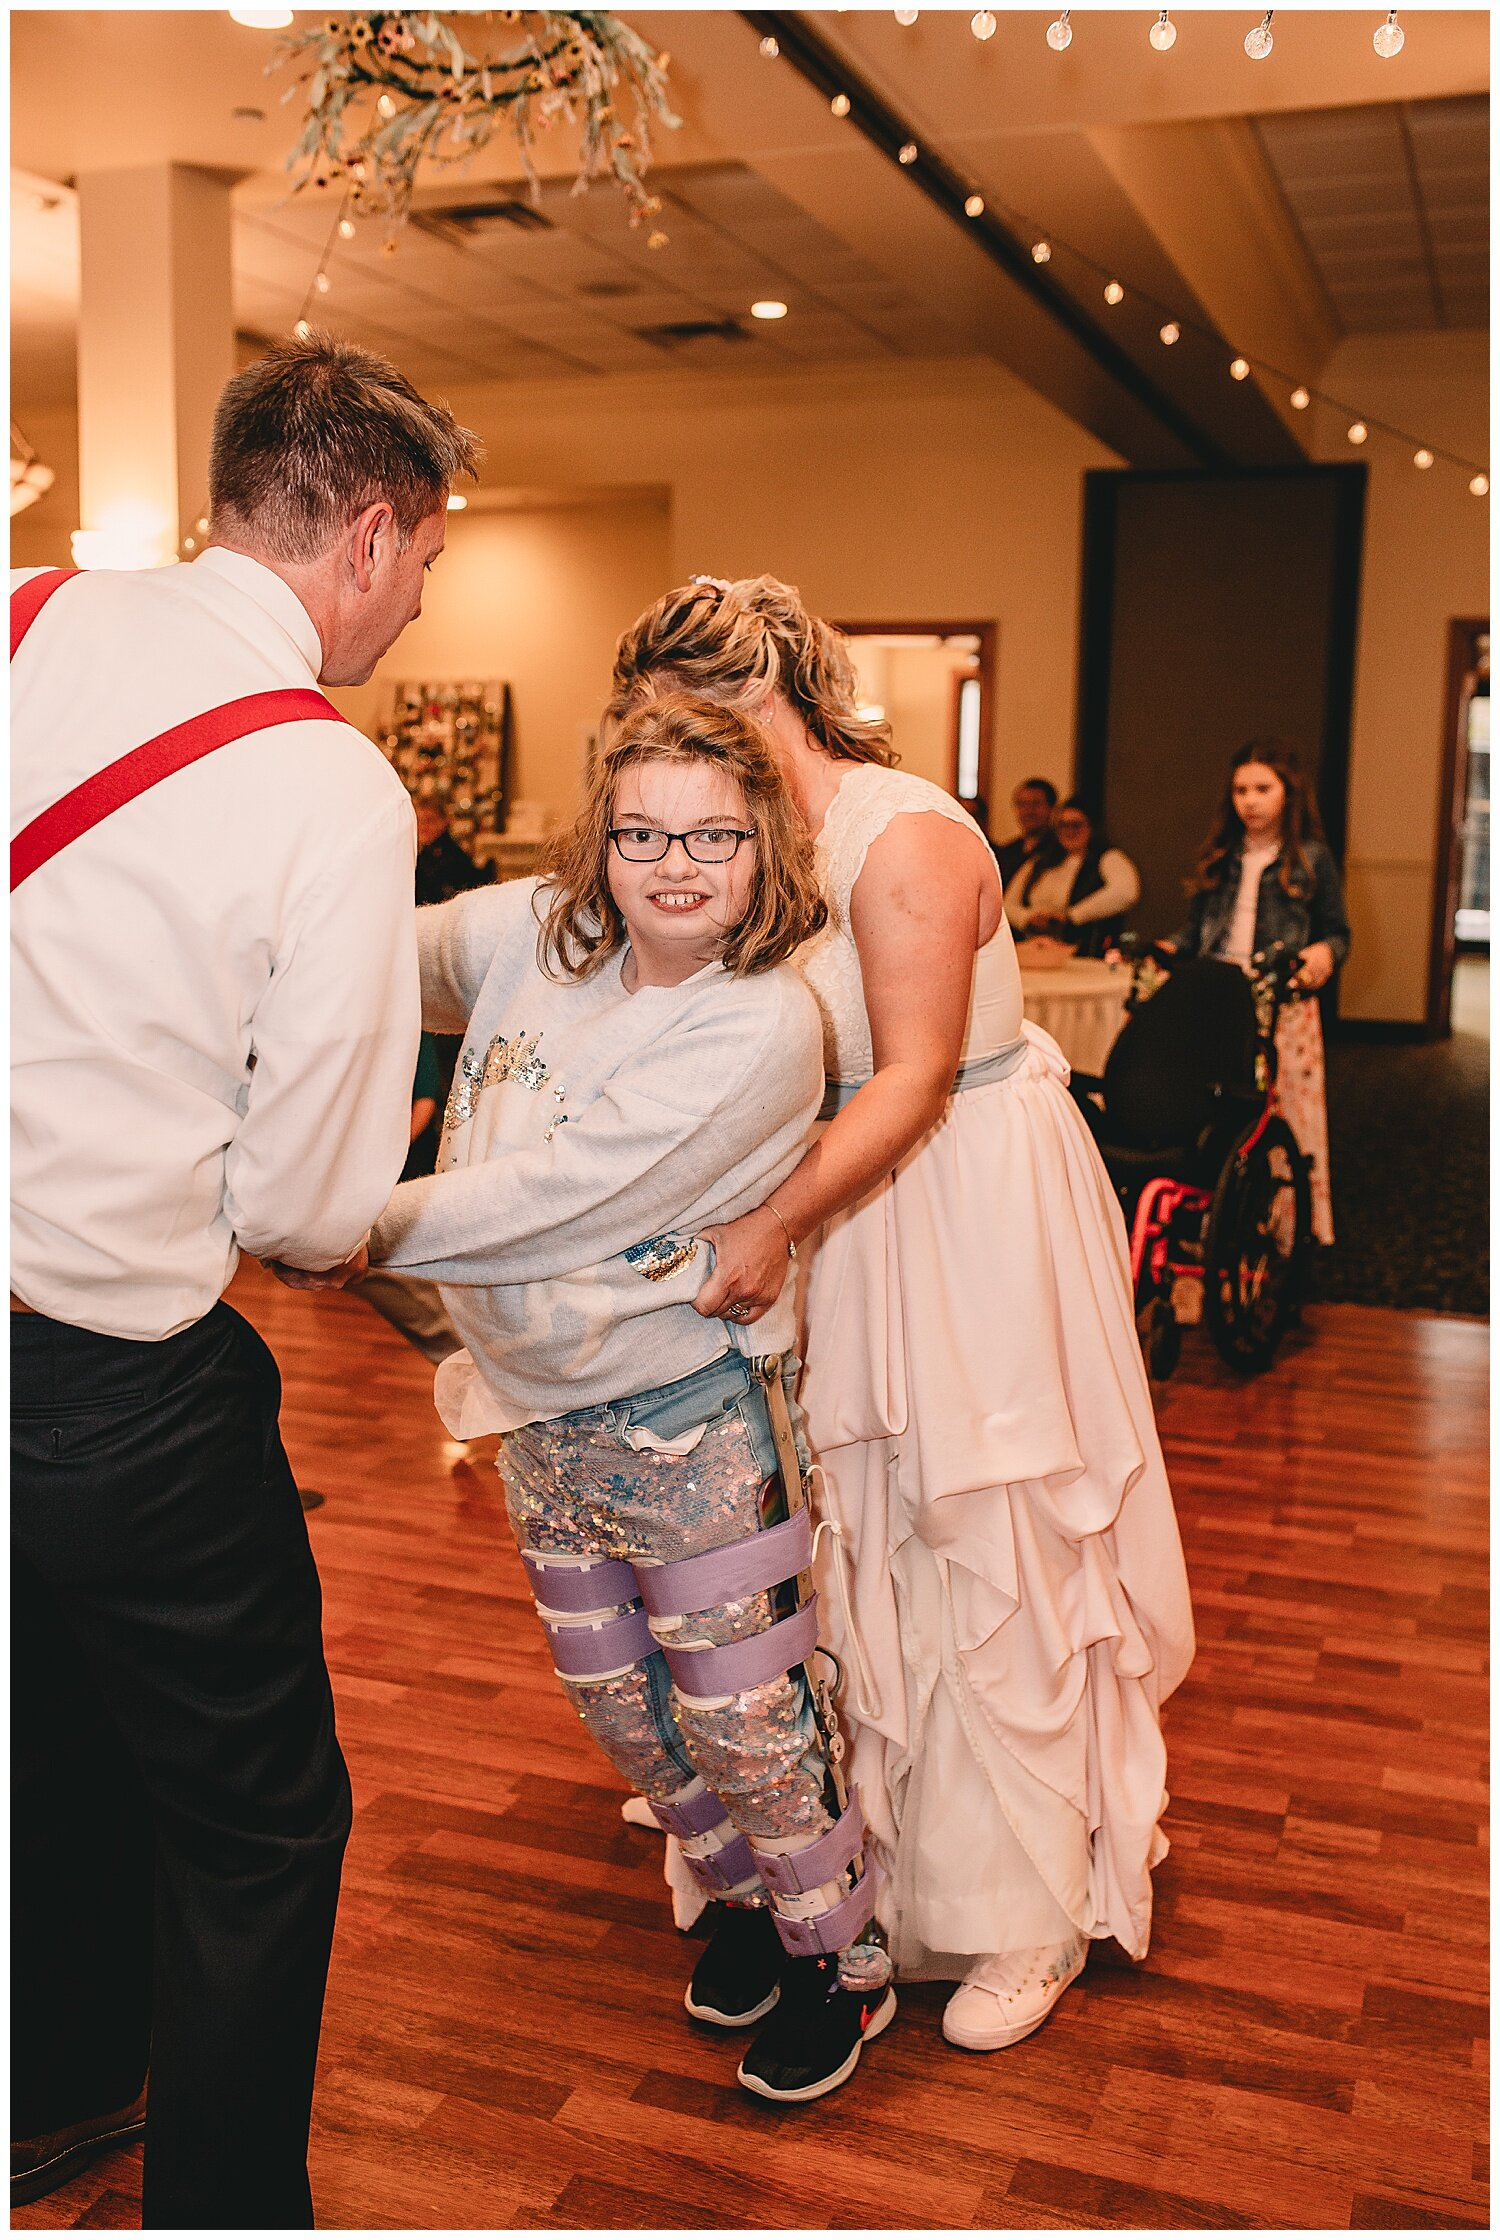 Without a doubt the best father/daughter dance ever. Mike and Maggie rocked it out on the dance floor and the smile on her face was priceless.